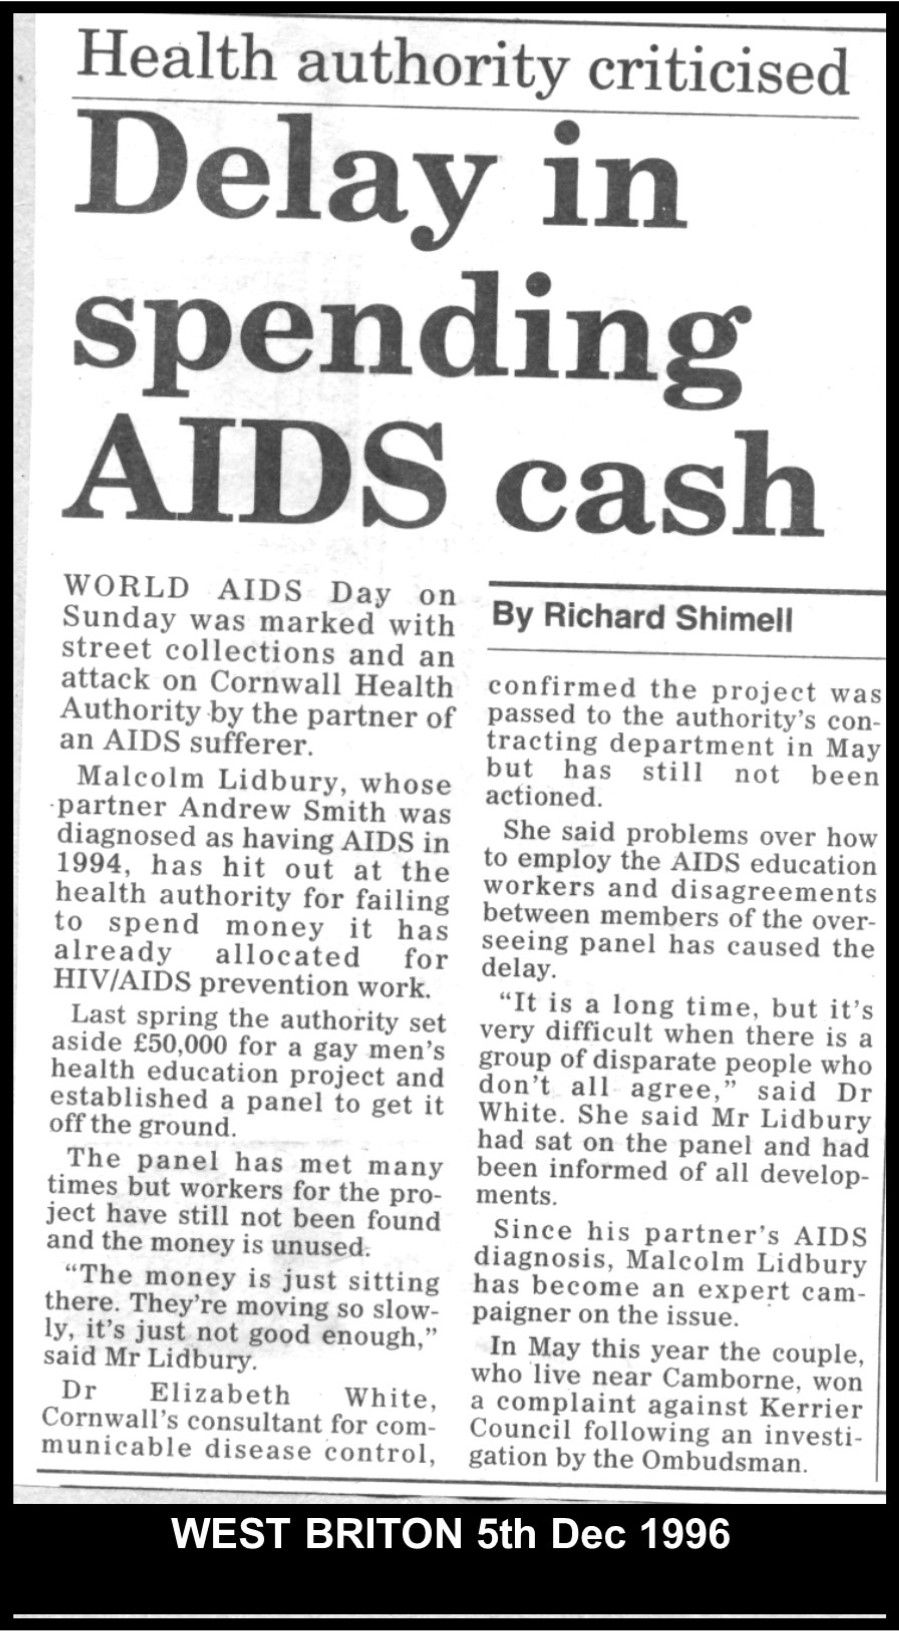 Lidbury who sat on the Health Authority advisory panel was highly critical that despite £50,000 being ear-marked for a gay health project in Cornwall the authorities were still dithering over the project.  #LGBT  http://www.lgbthistorycornwall.blogspot.com